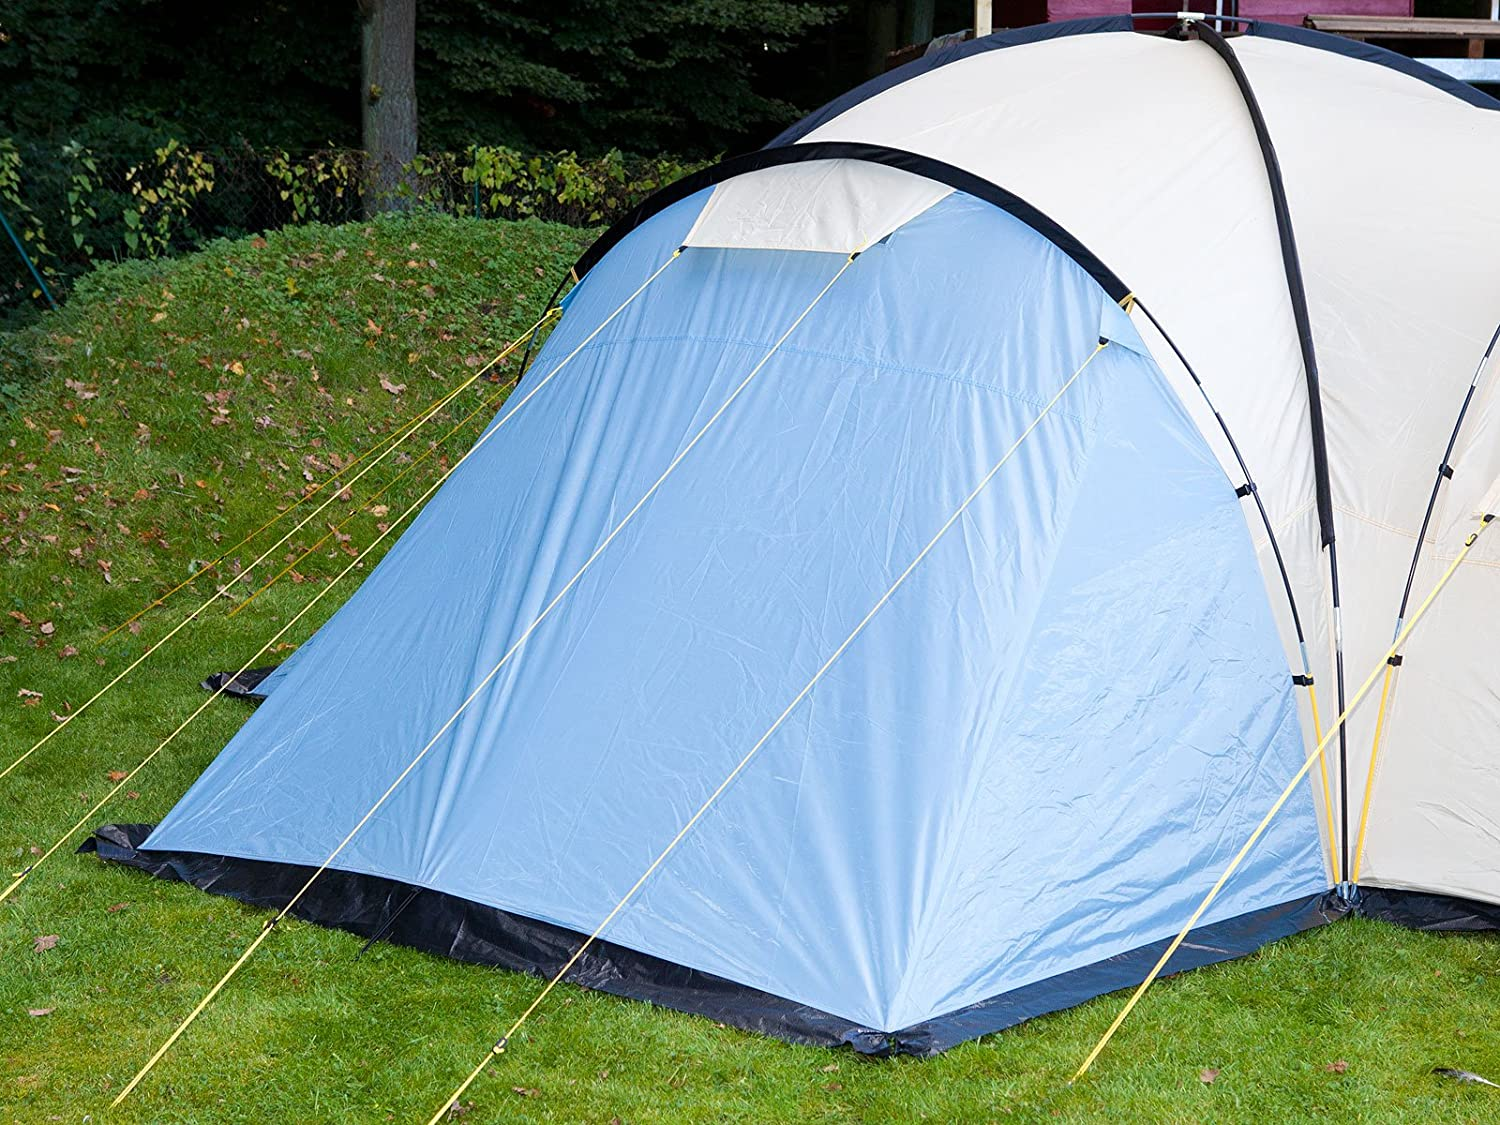 Skandika Toronto Large 8-Person Family C&ing Tent with 3 Sleeping Rooms and Sun Canopy Porch Blue/Beige Amazon.co.uk Sports u0026 Outdoors & Skandika Toronto Large 8-Person Family Camping Tent with 3 ...